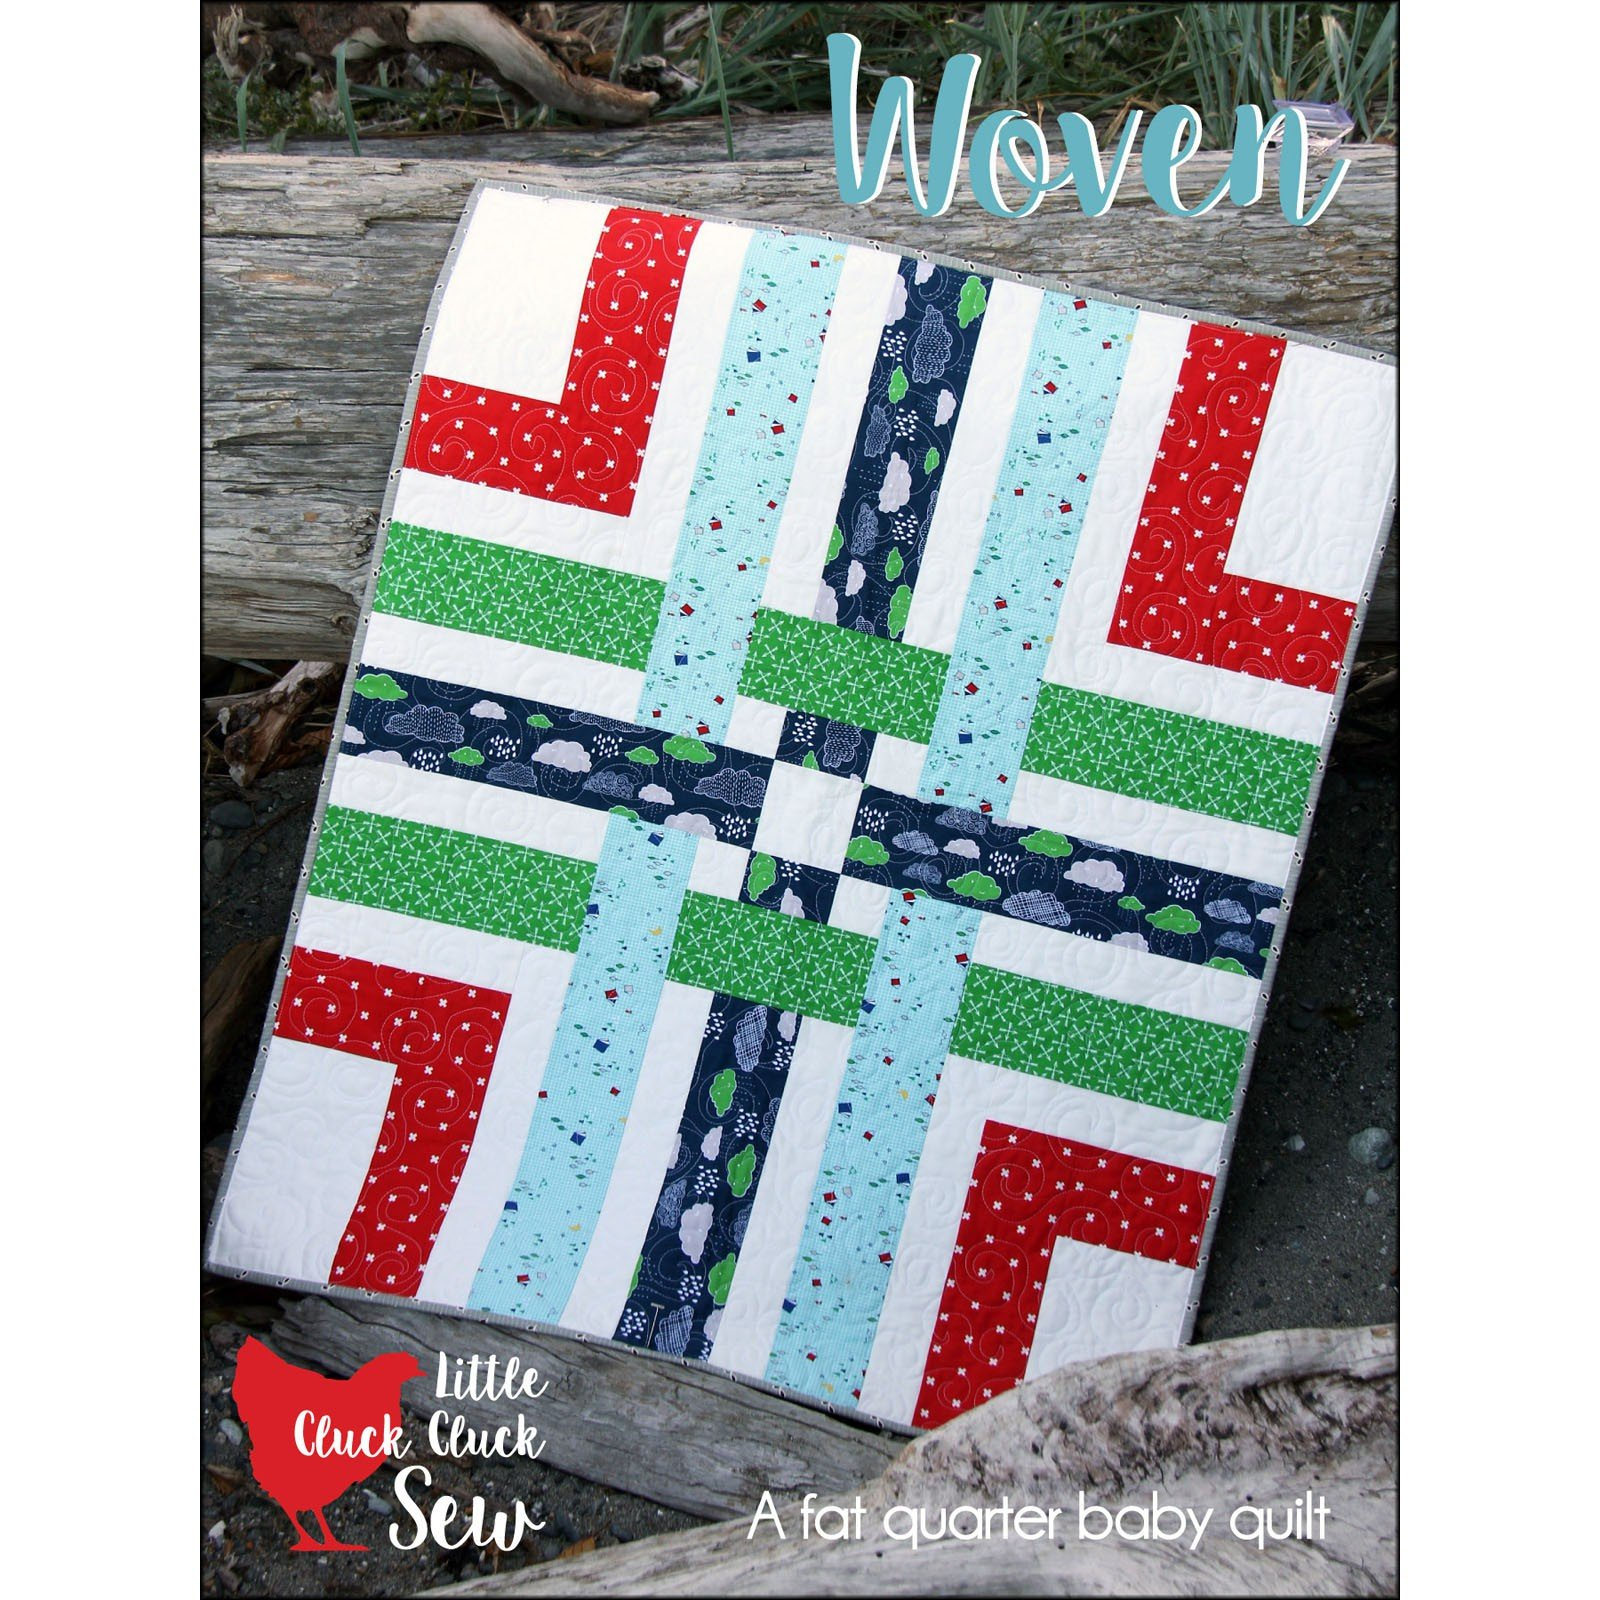 Woven Baby Quilt<br/>Cluck Cluck Sew